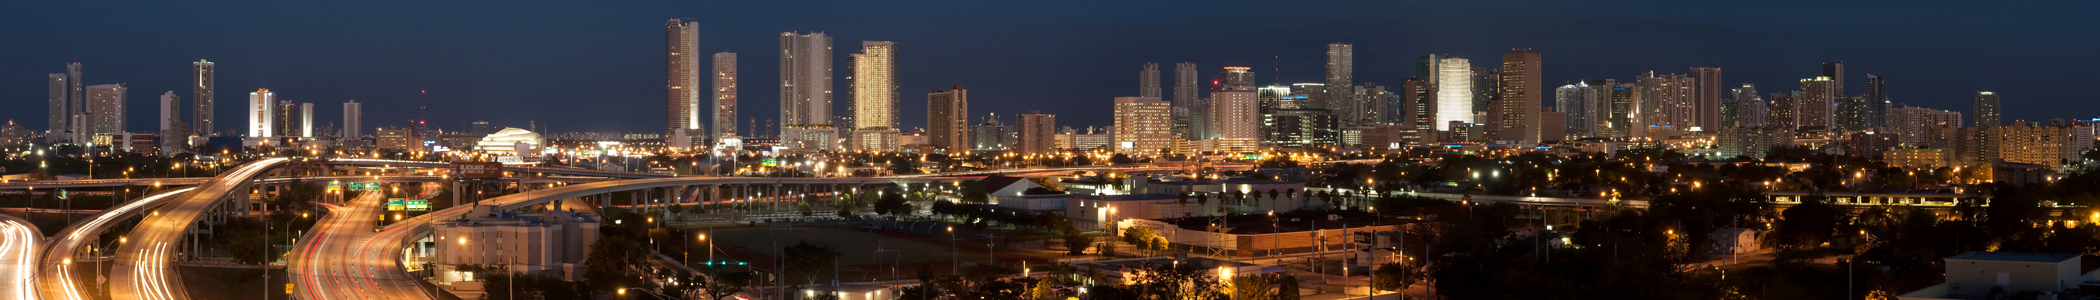 Skyline of Miami, Florida, United States